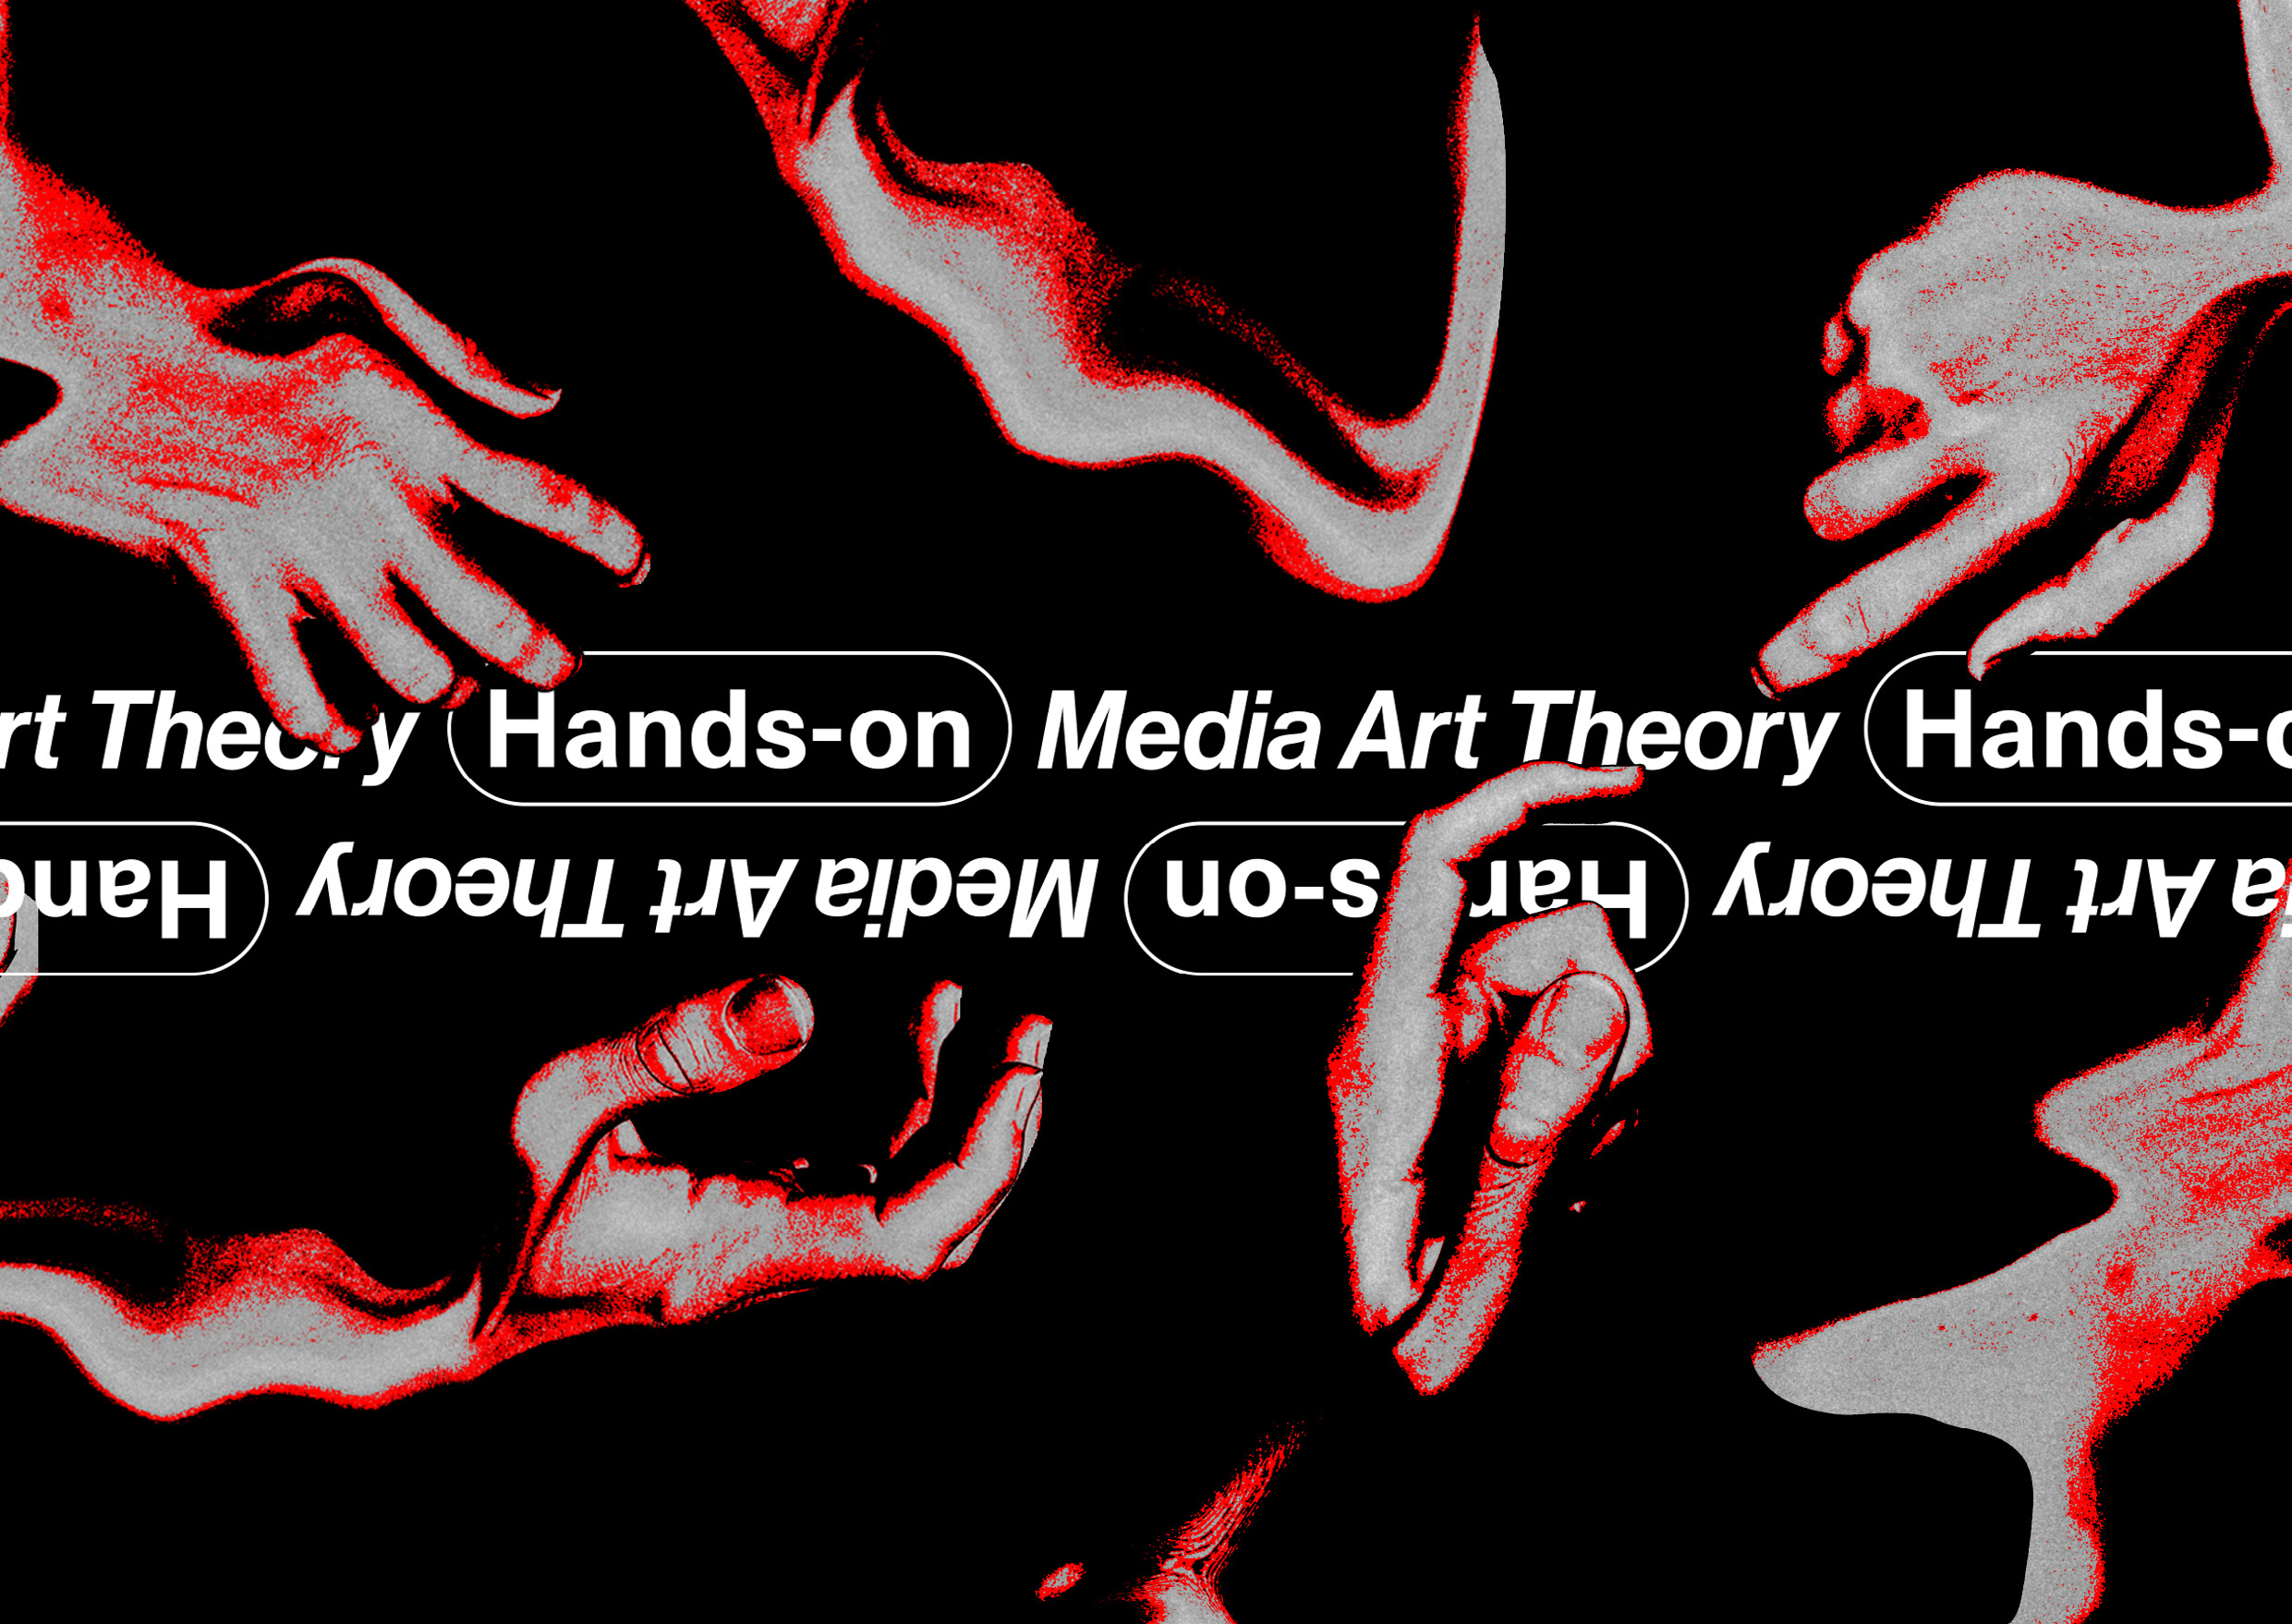 Obálka pro Hands-on Media Art Theory. TIM Exhibited @ Ars Electronica Festival 2019